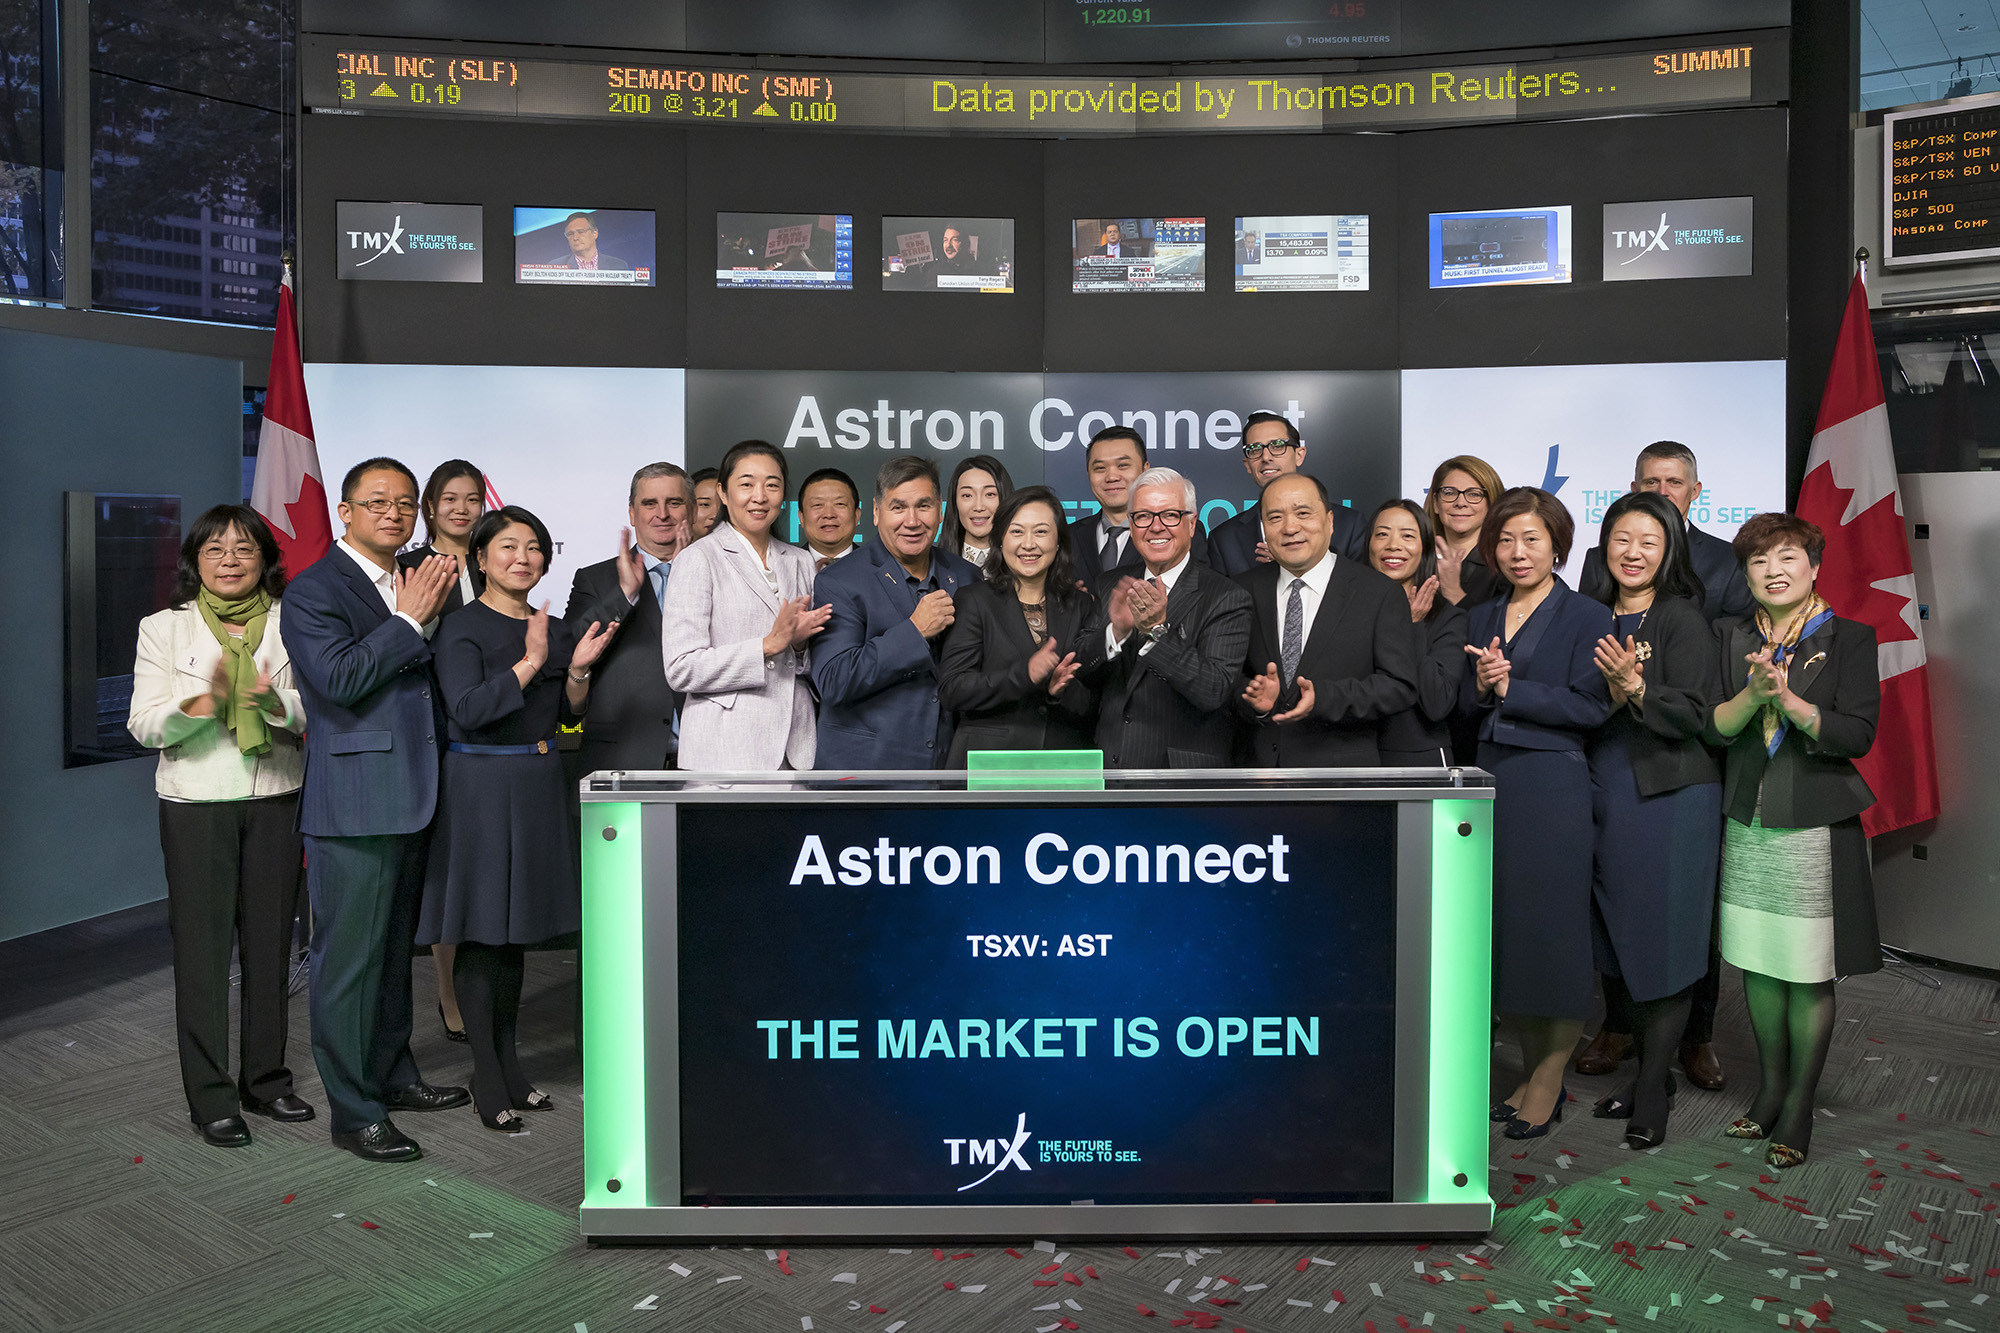 Astron Connect Inc. Opens the Market (CNW Group/TMX Group Limited)